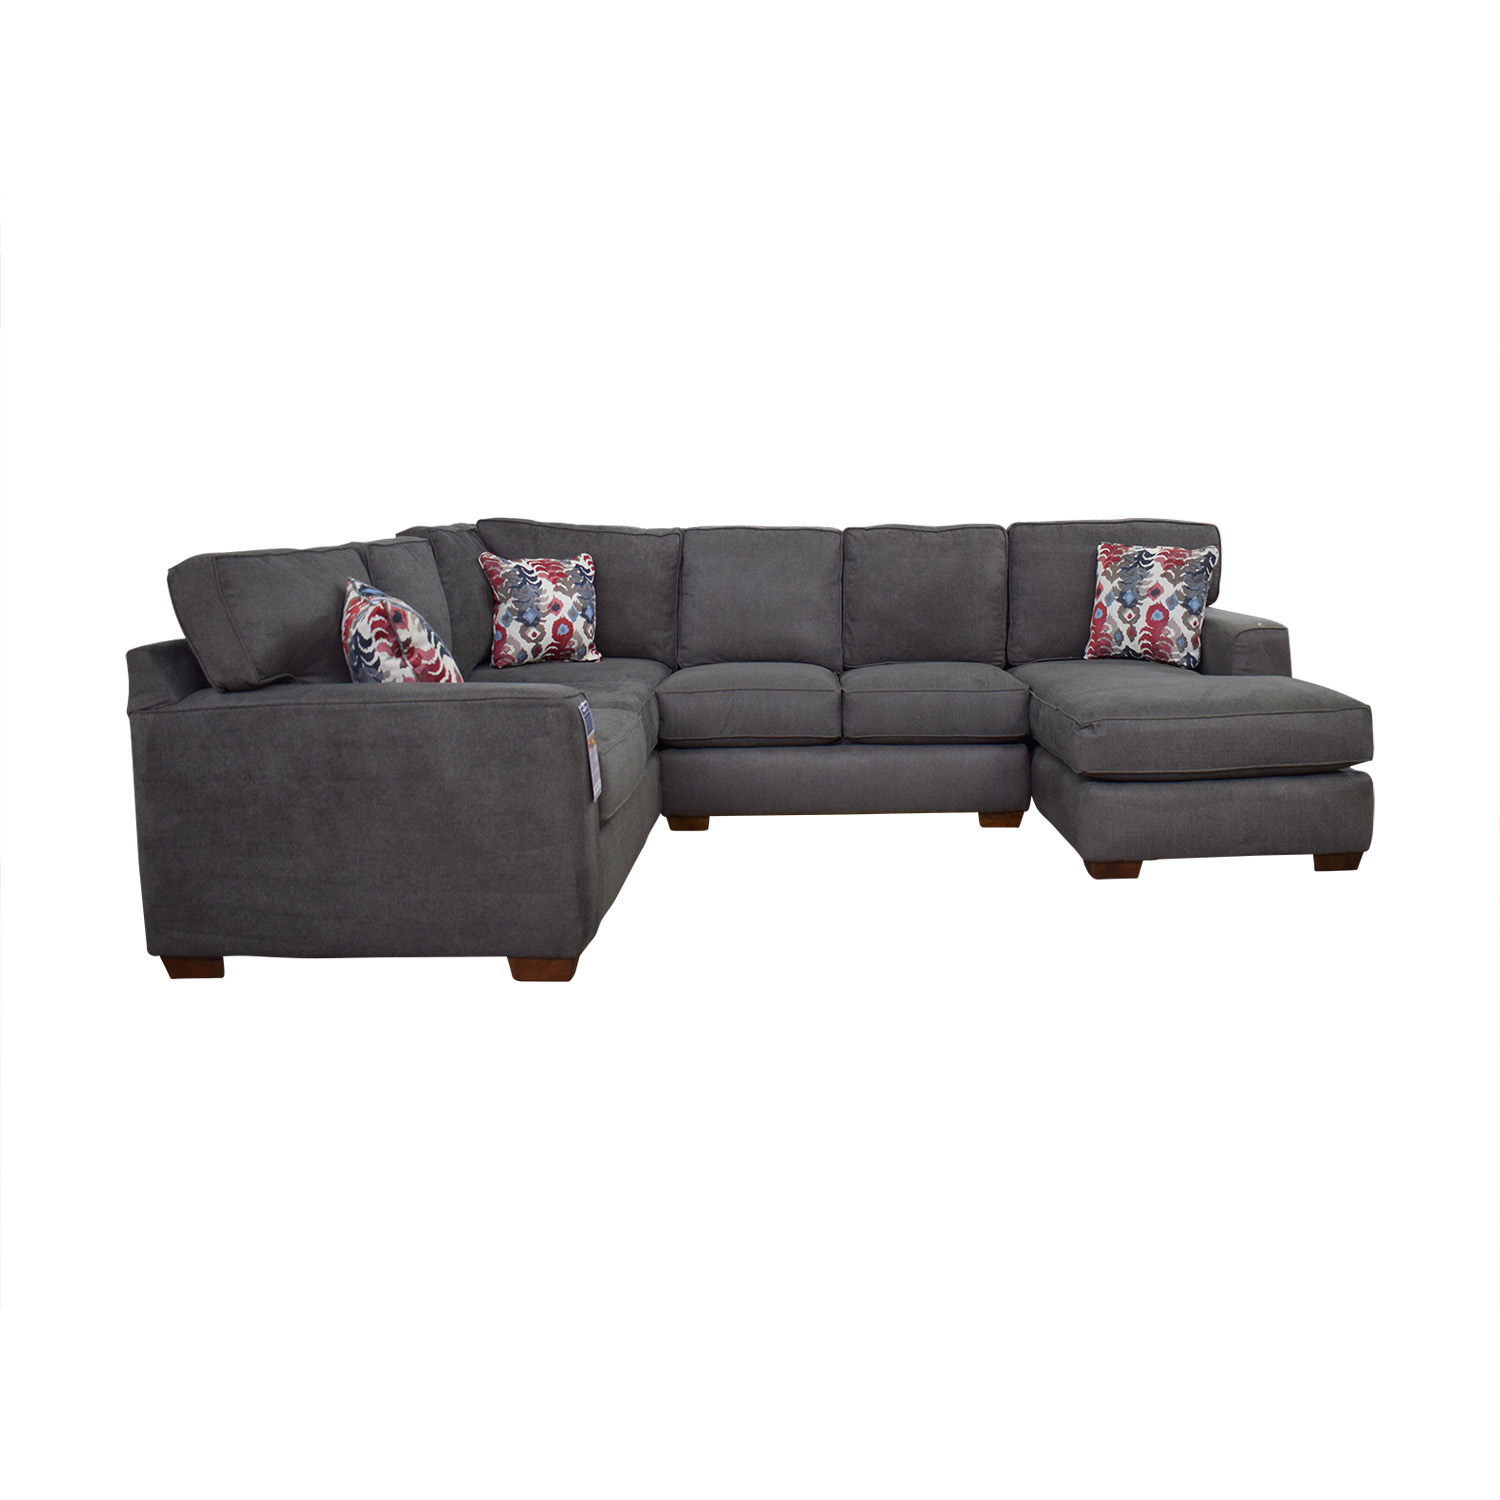 Klaussner Klaussner Abbott Three-Piece Chaise Sectional Sofa